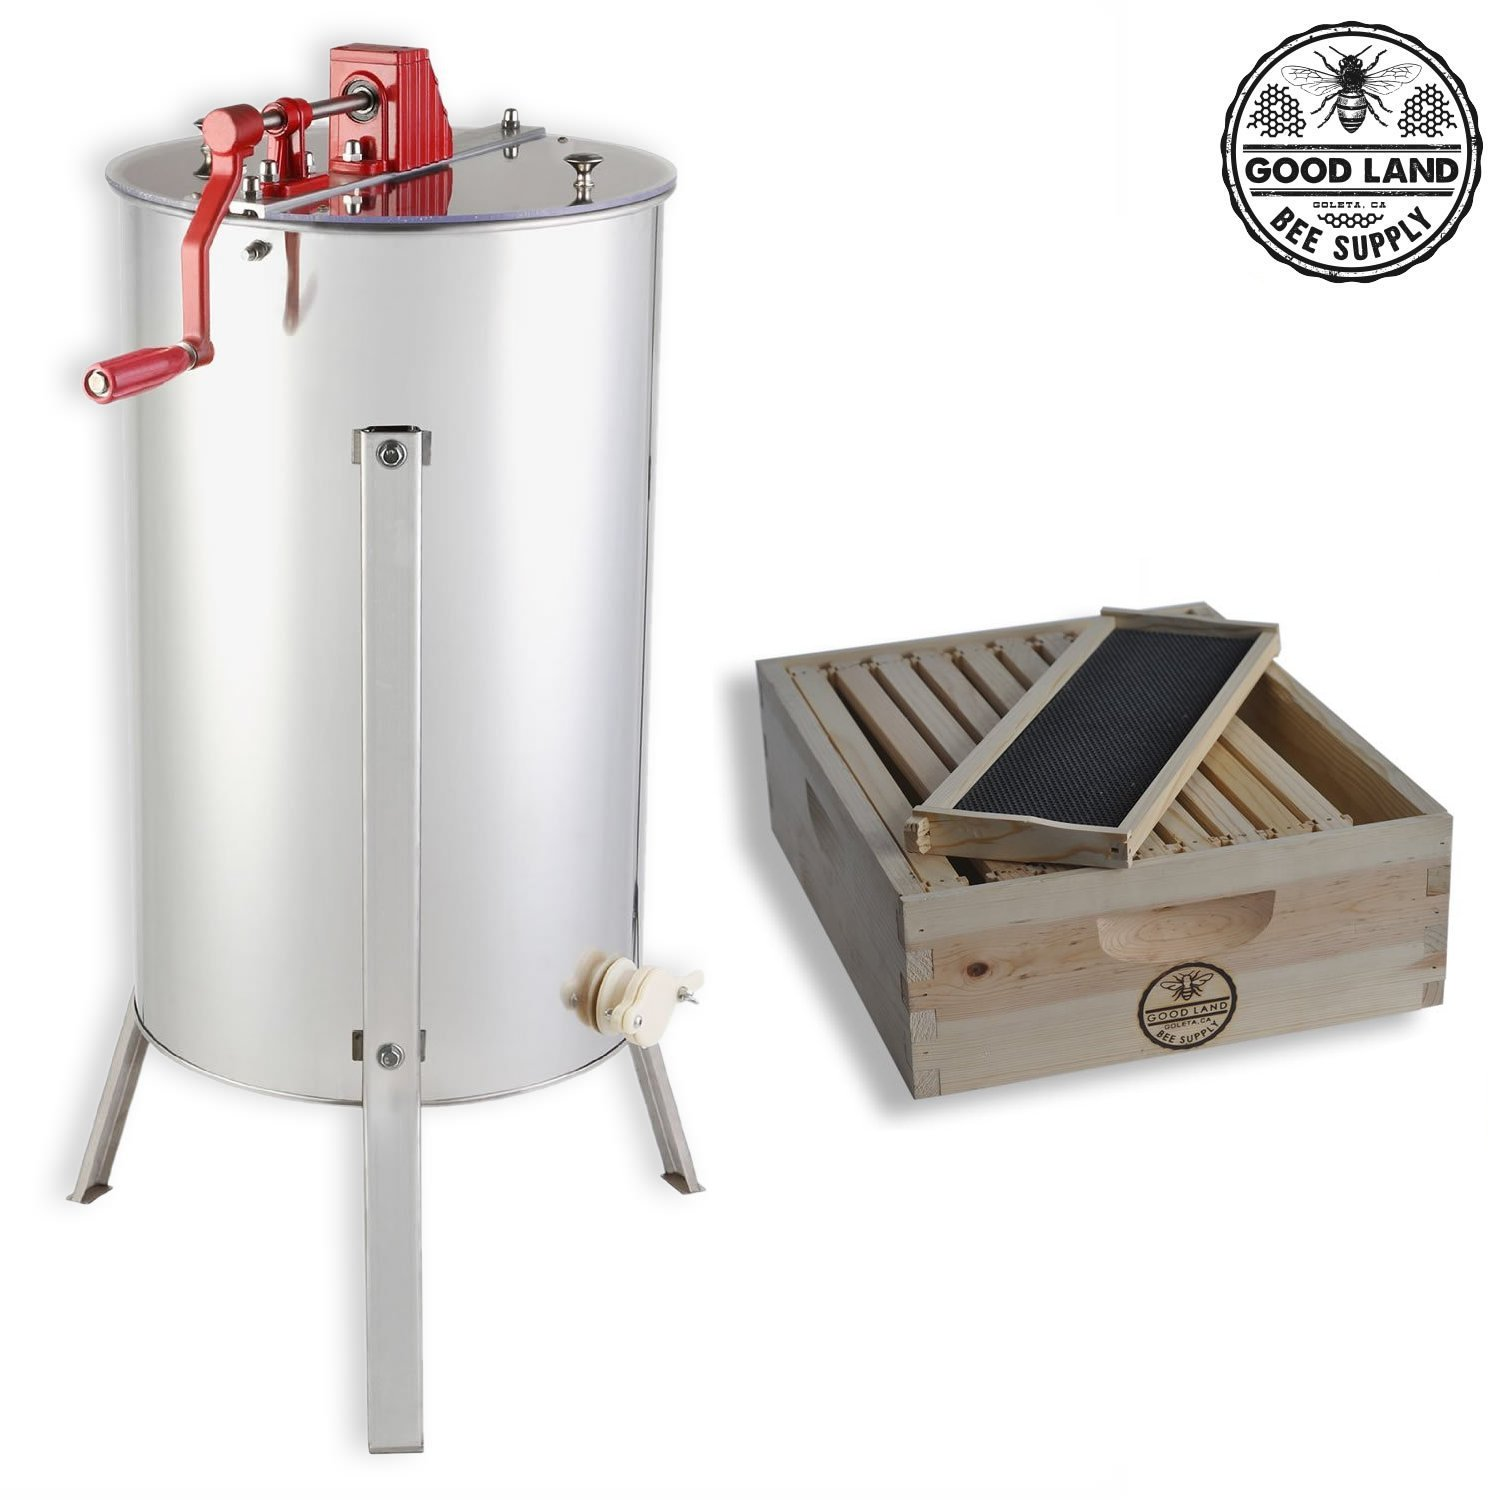 Goodland Bee Supply 2 Frame Honey Extractor and 1 Complete Honey Super Free Spacer Included - GL-E2-1SK-SPCR